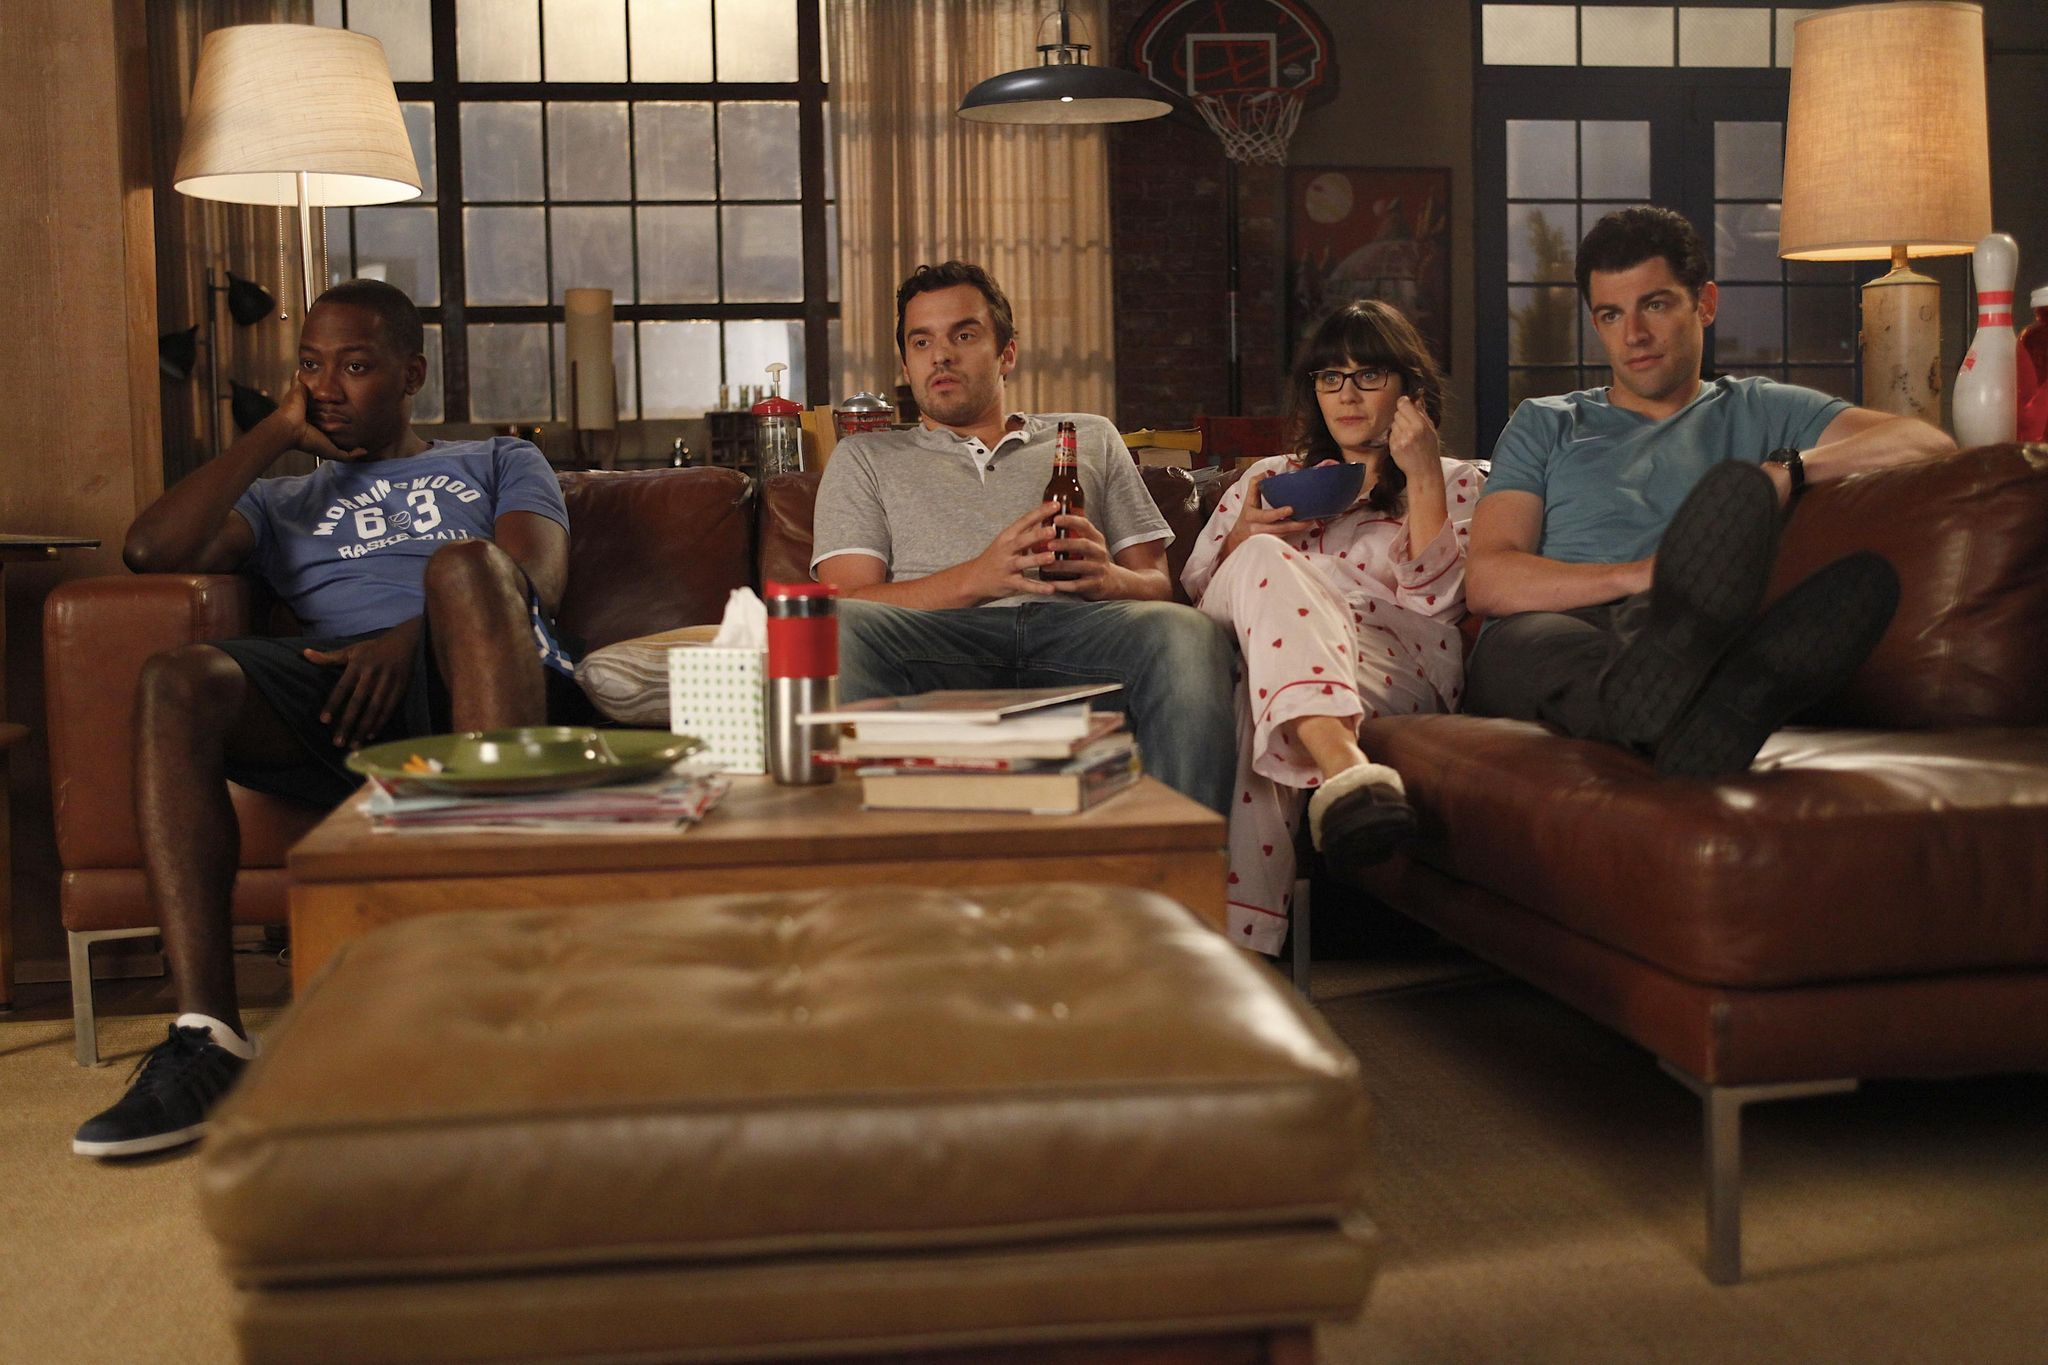 Winston (Lamorne Morris), Nick (Jake Johnson), Jess (Zooey Deschanel), Schmidt (Max Greenfield) ~ New Girl Episode Stills ~ Season 1, Episode 4: Naked #amusementphile